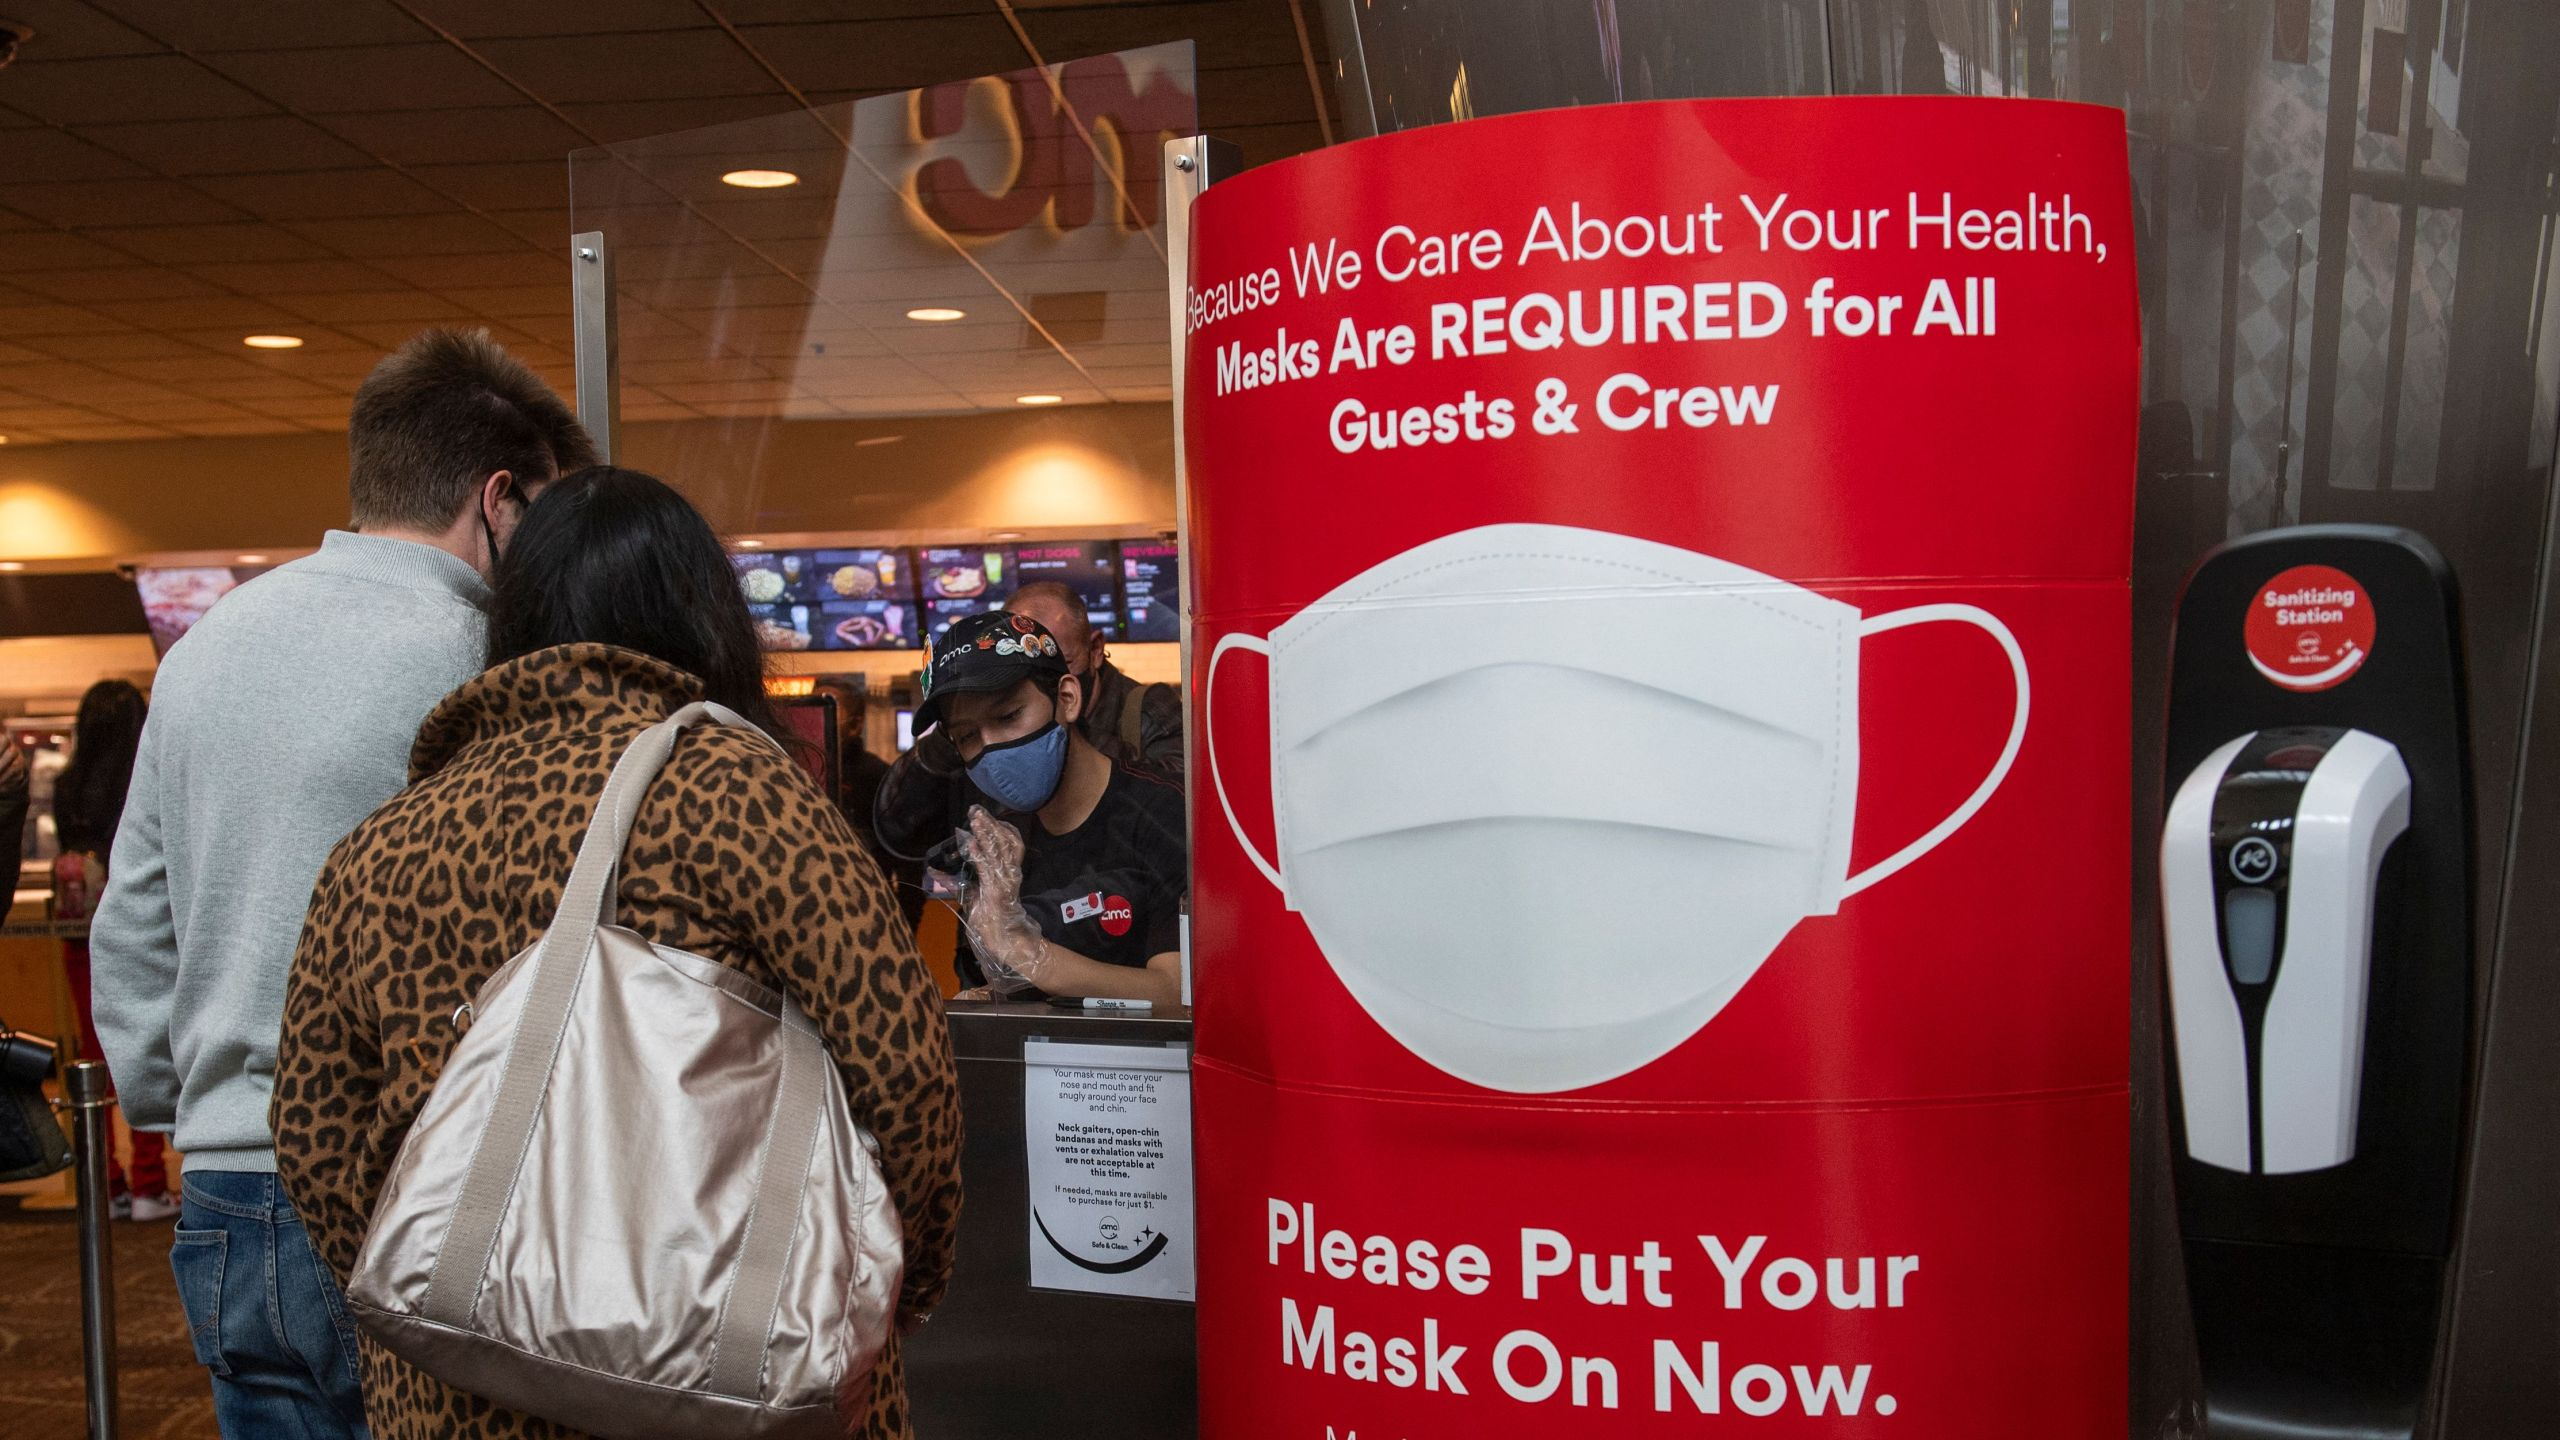 A sign asking people to wear a mask is displayed as moviegoers buy tickets at the AMC Burbank theatre on reopening day on March 15, 2021. (VALERIE MACON/AFP via Getty Images)